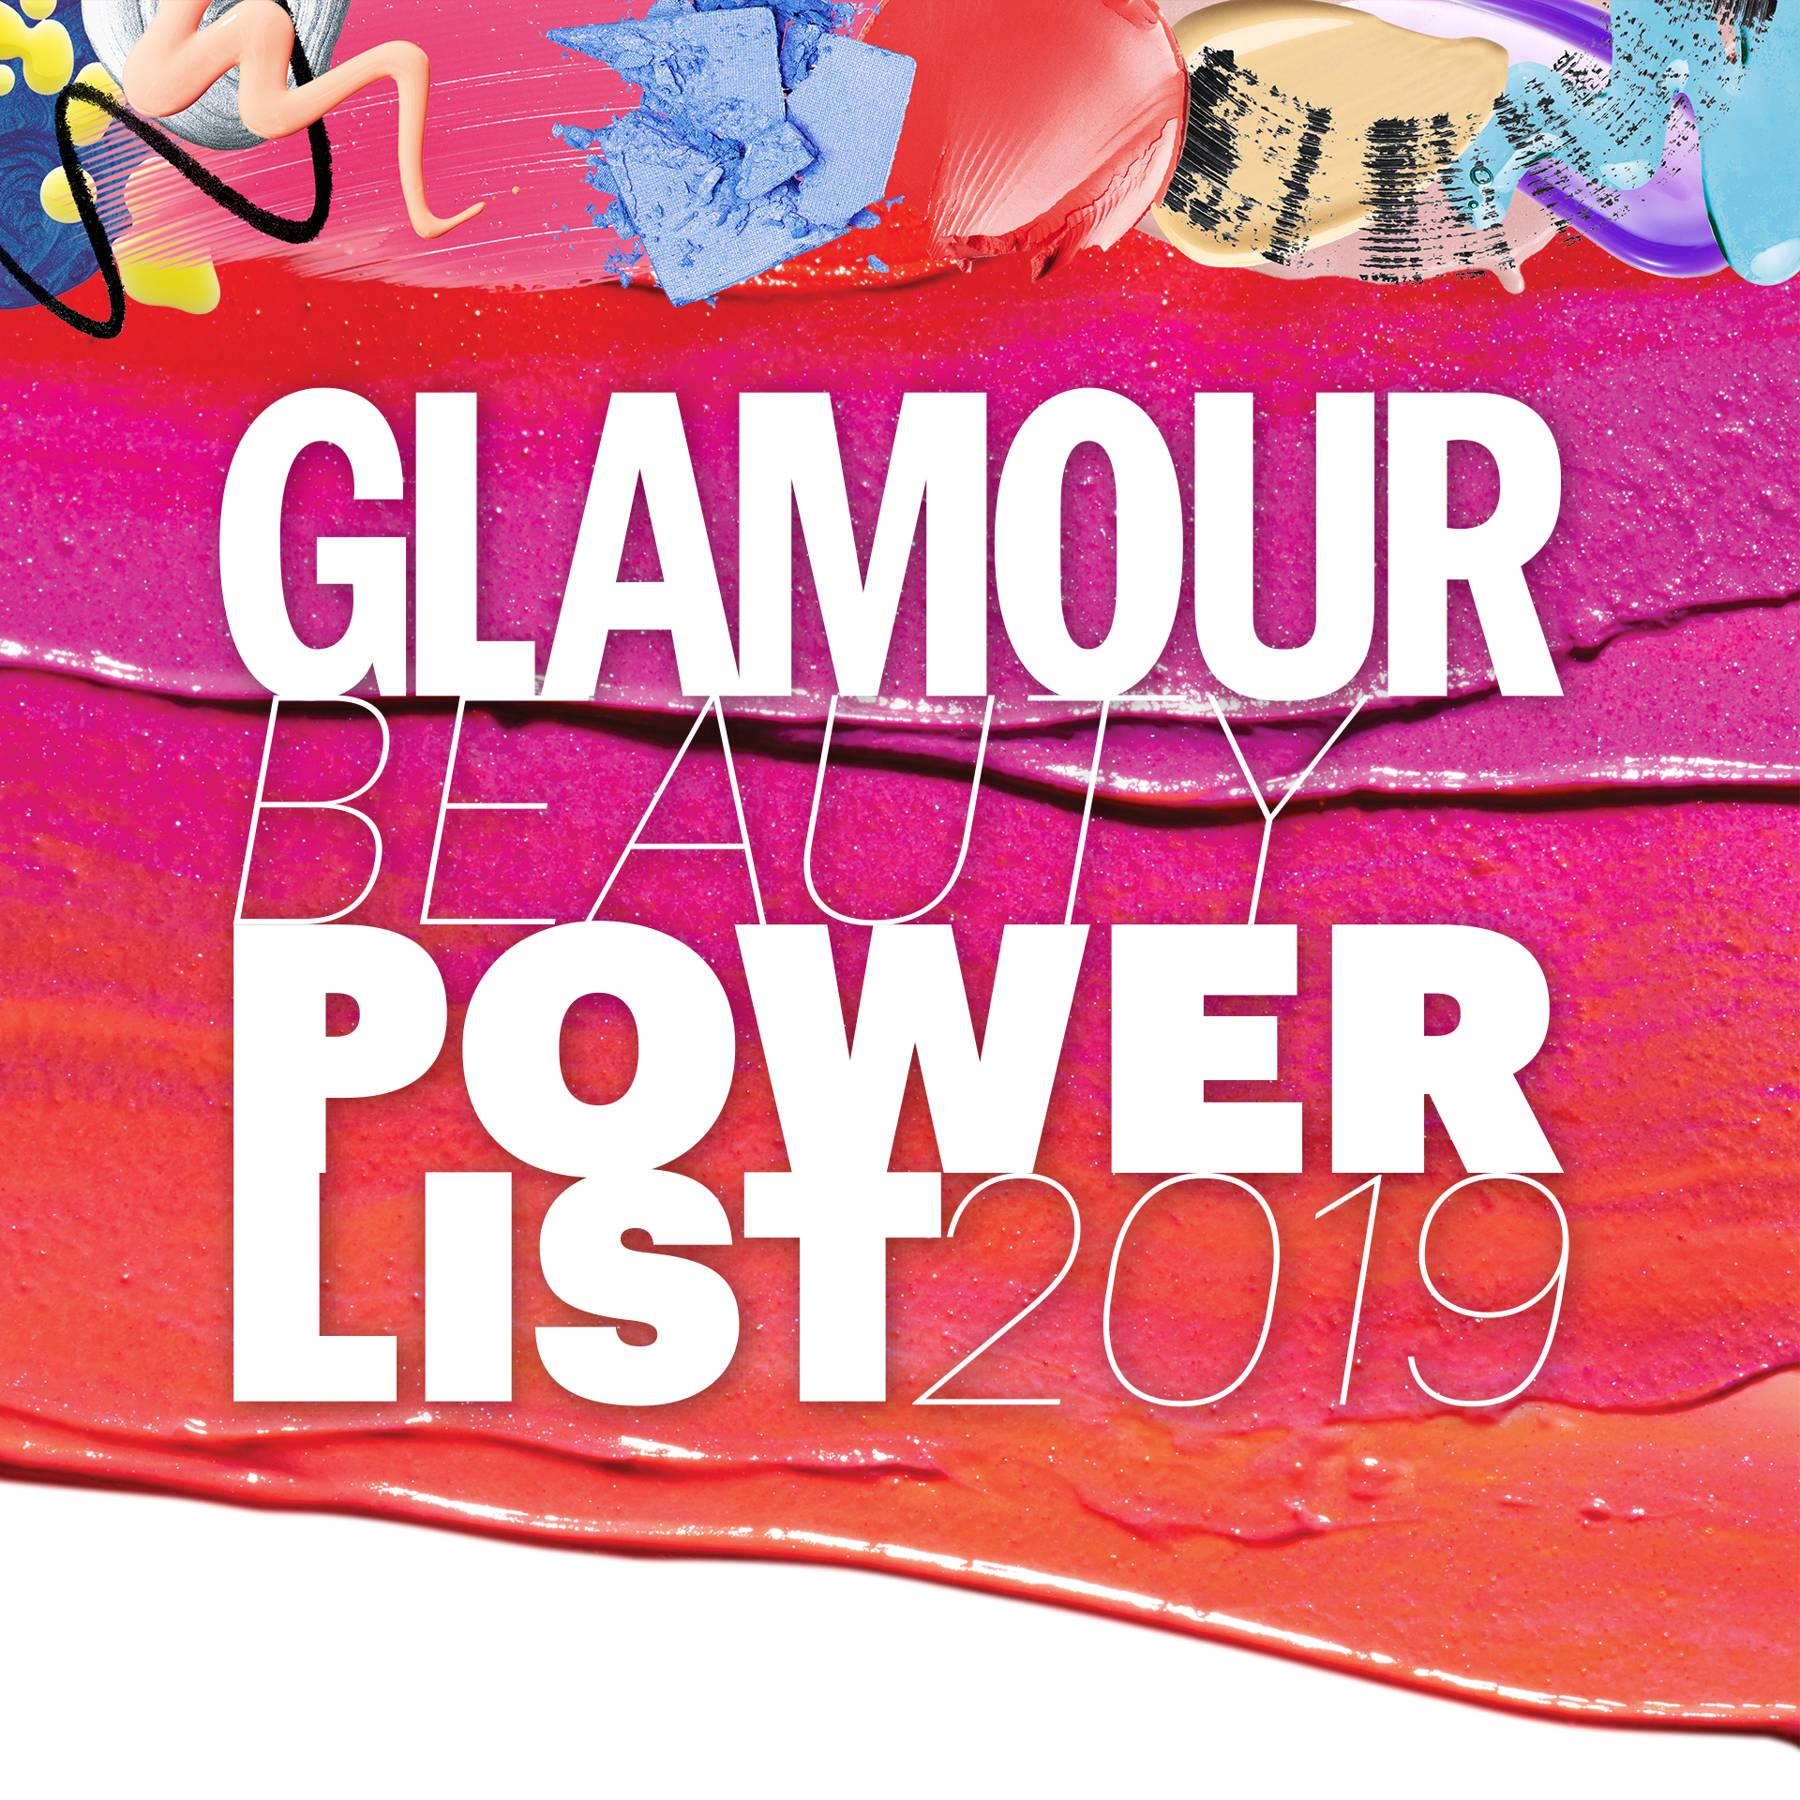 GLAMOUR Beauty Power List 2019: After 1.7 million votes, the winners are in!